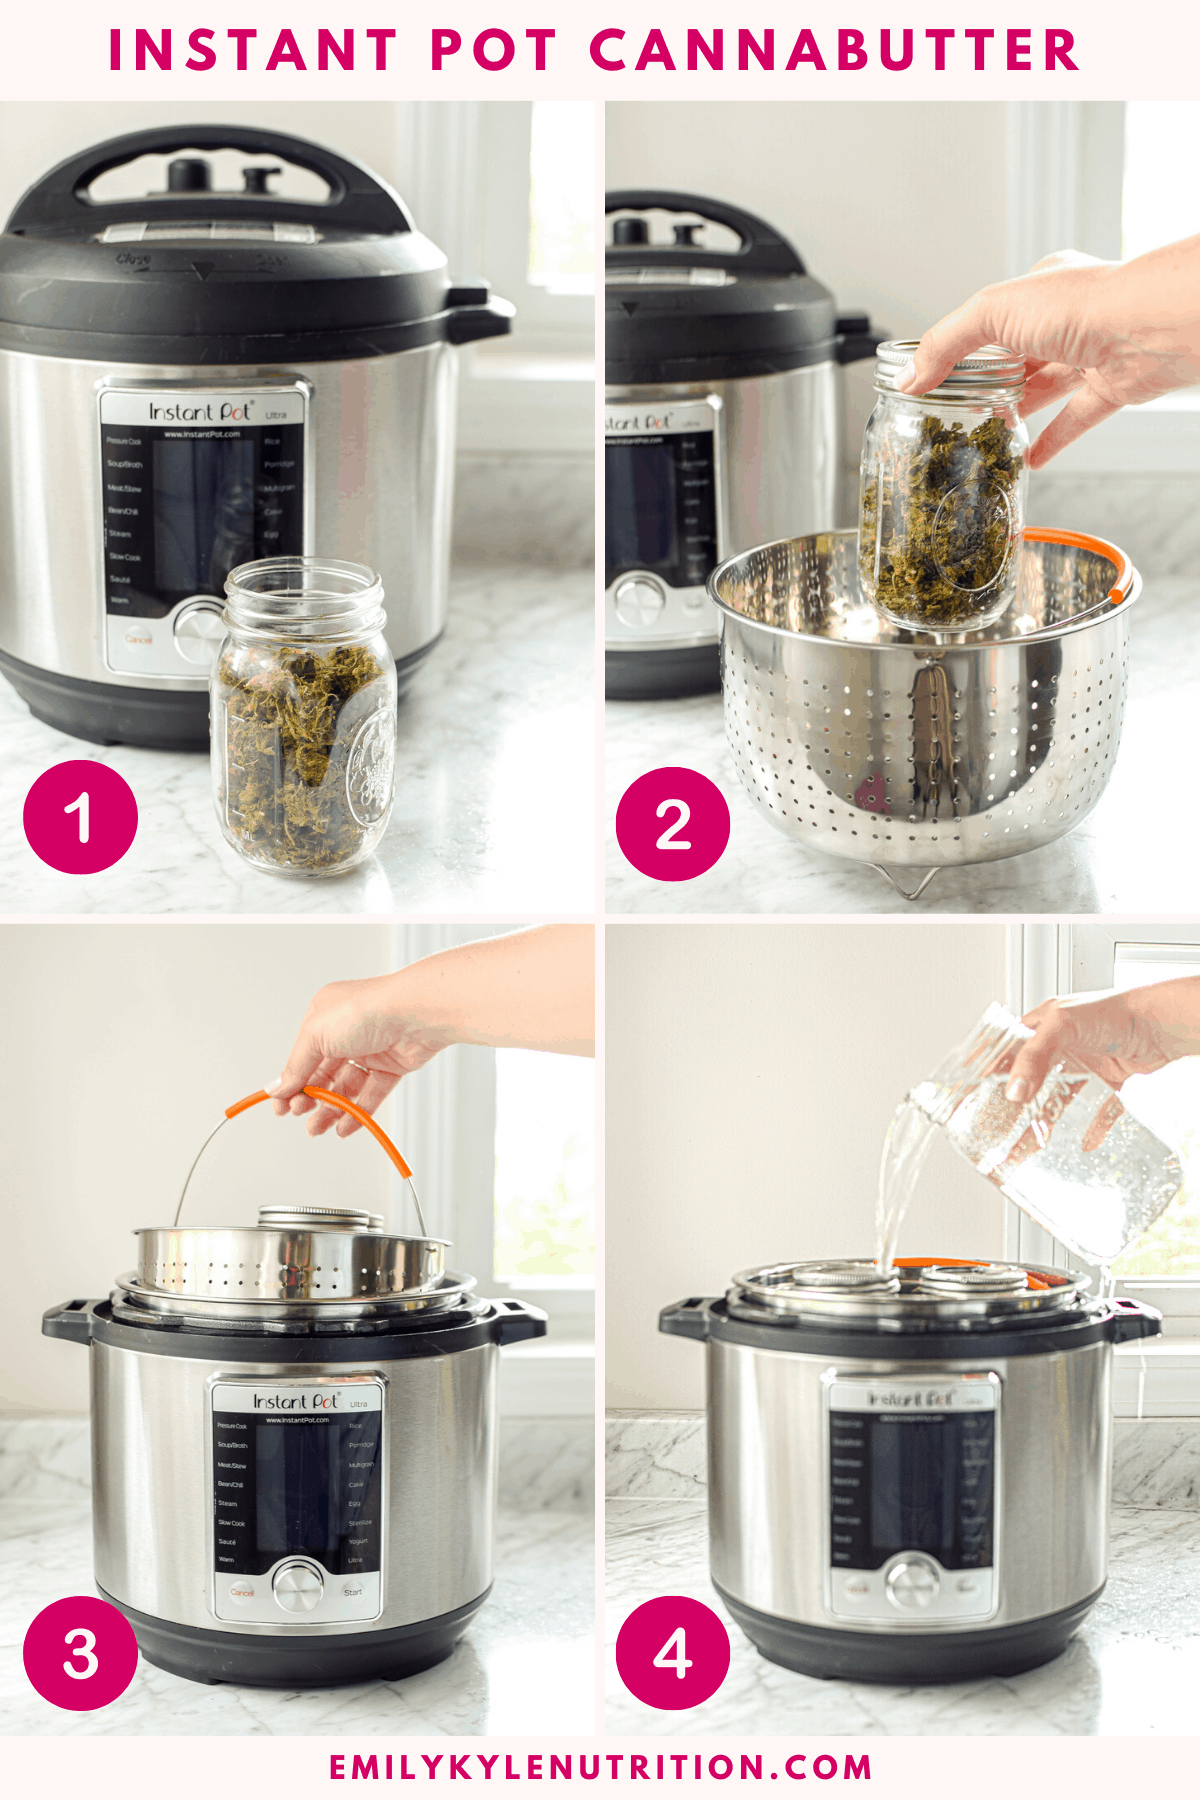 A 4 image collage showing how to decarb in an instant pot to make cannabutter